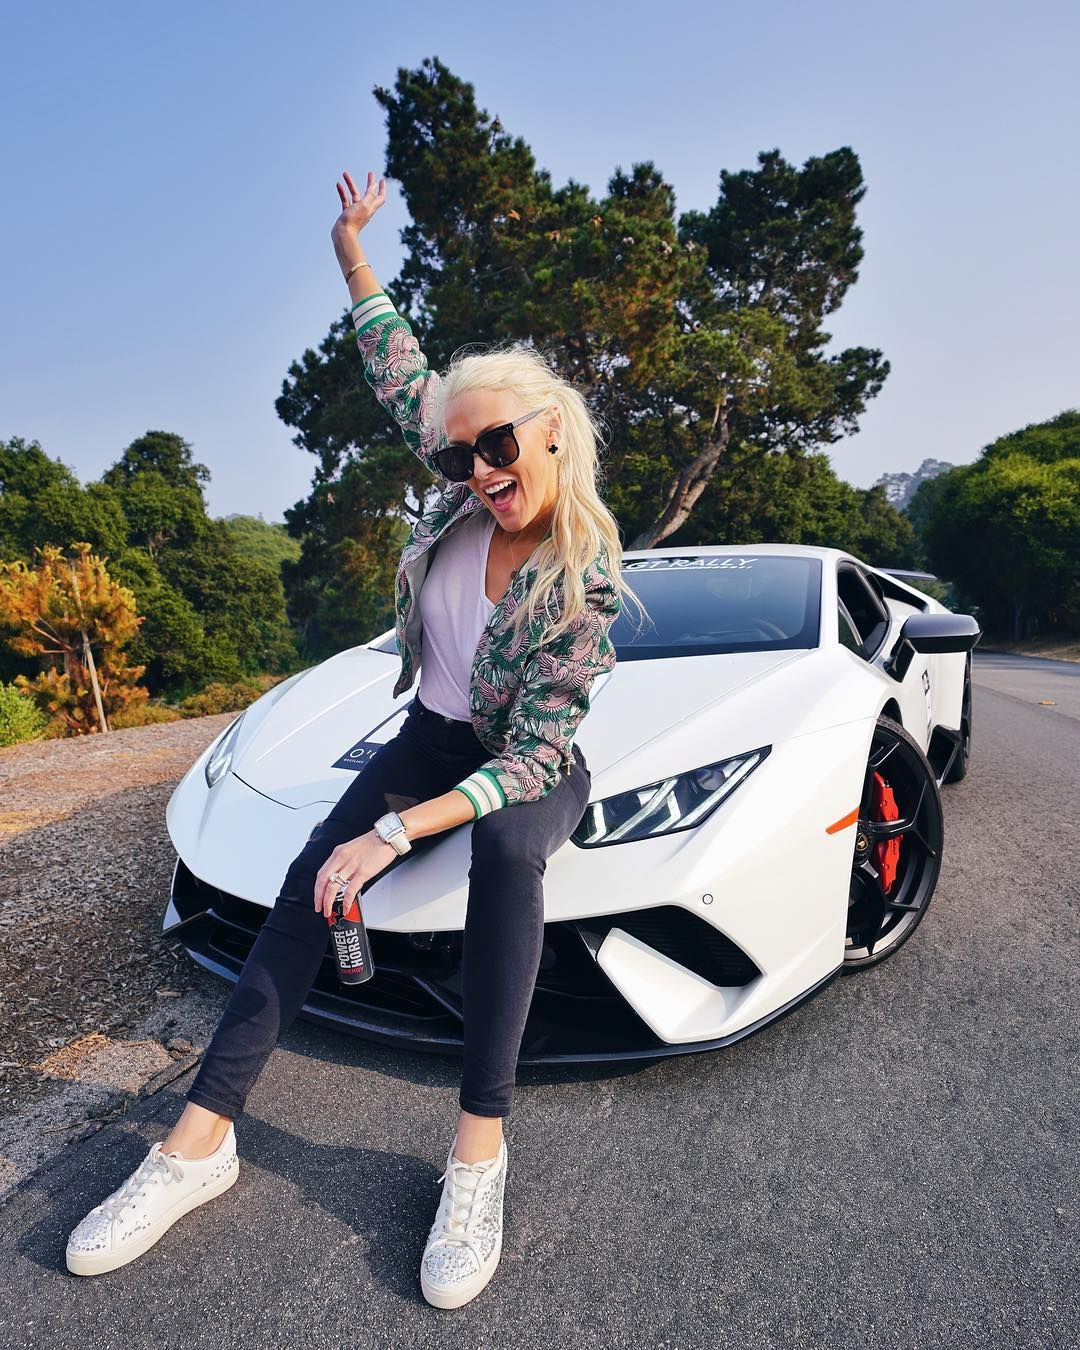 This Is Lucy If She Lost 40kg And Started Pumping Iron Epic Drive With The Performante On Sunsetgranturismo Ogara Car Girls Super Cars Classy Cars